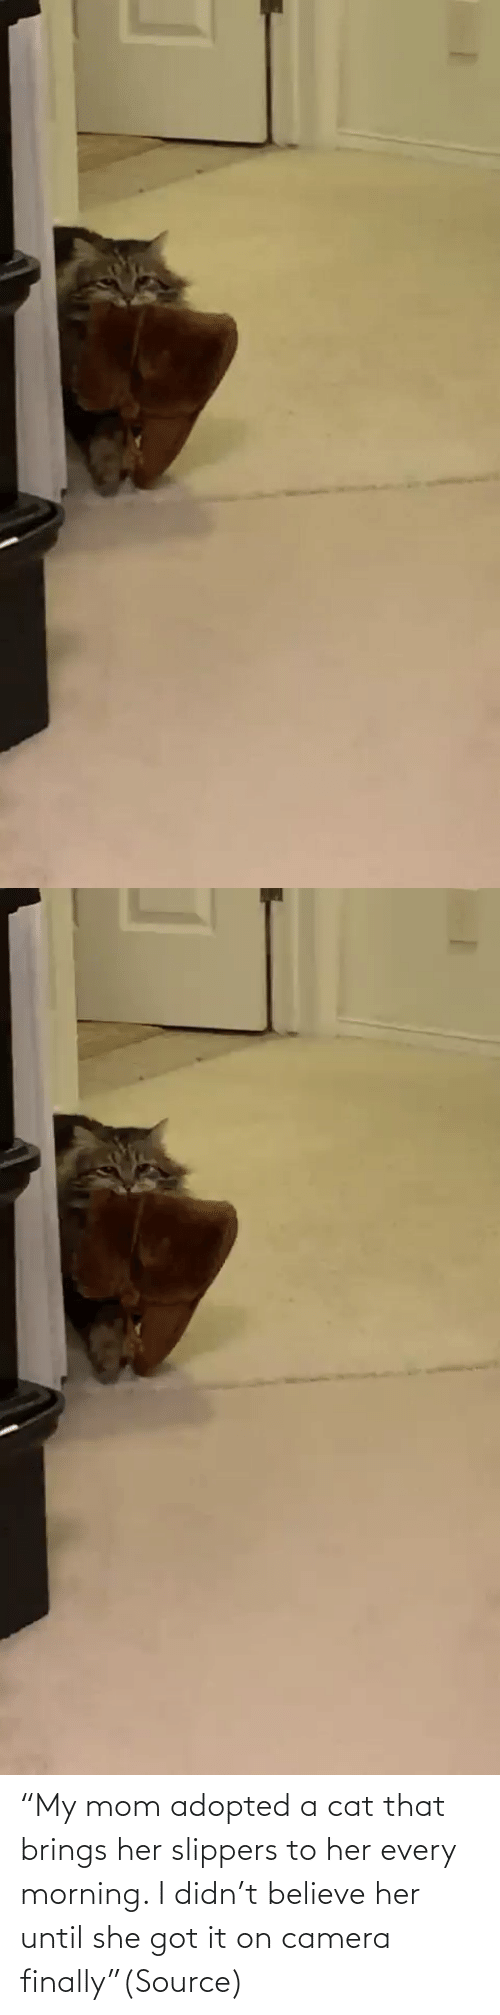 "believe: ""My mom adopted a cat that brings her slippers to her every morning. I didn't believe her until she got it on camera finally""(Source)"